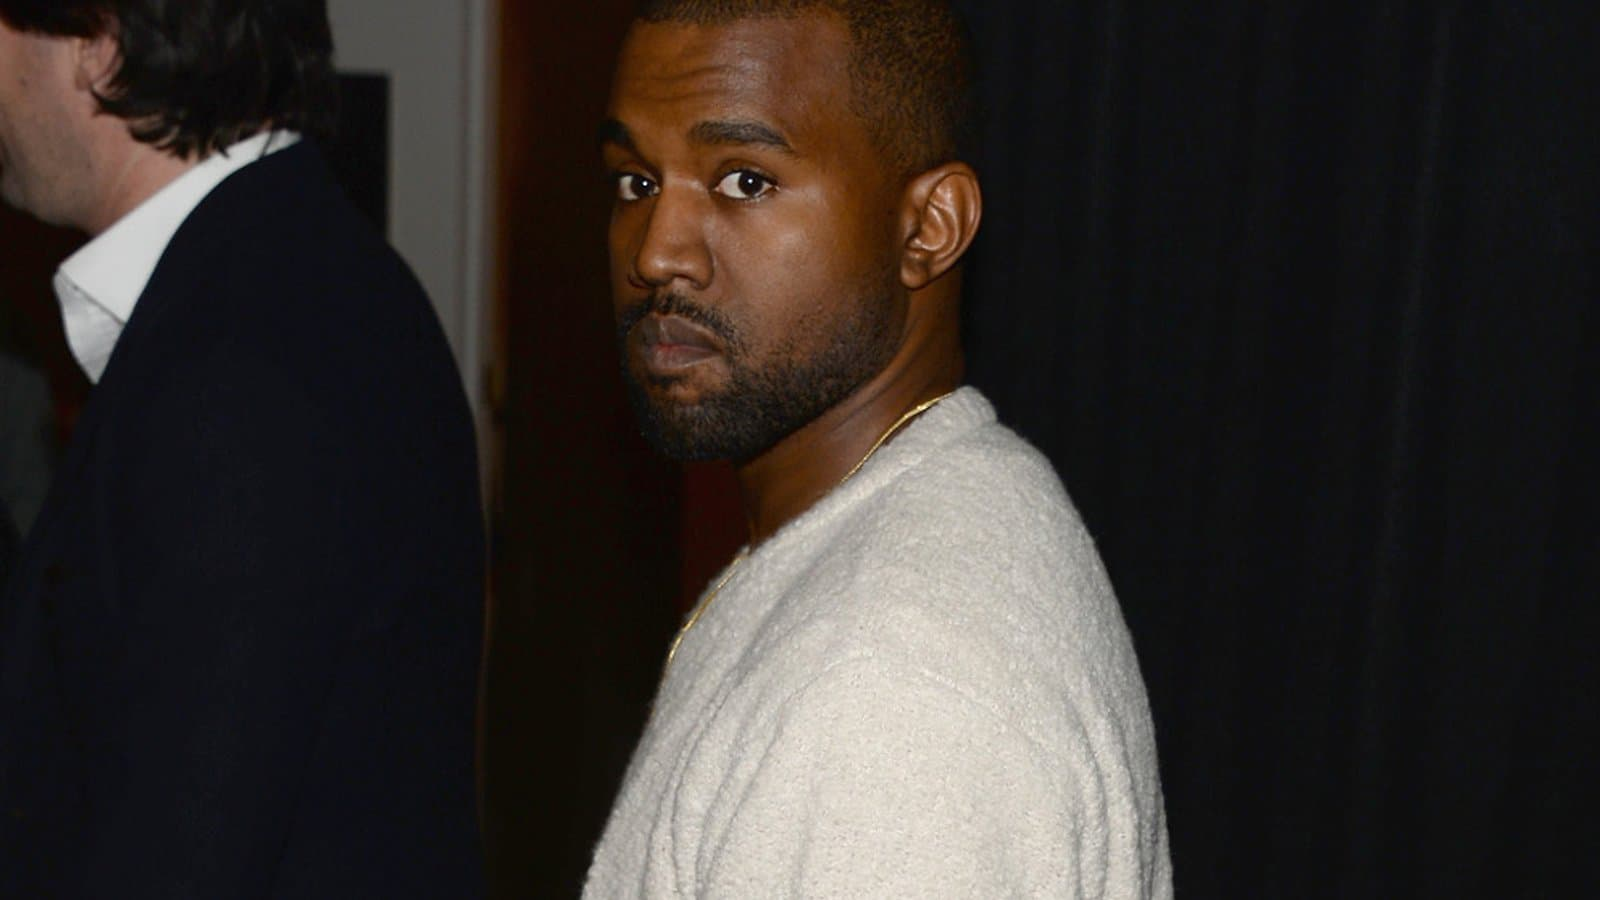 Kanye West en février 2014 à New York. - Theo Wargo - Getty Images North America - AFP